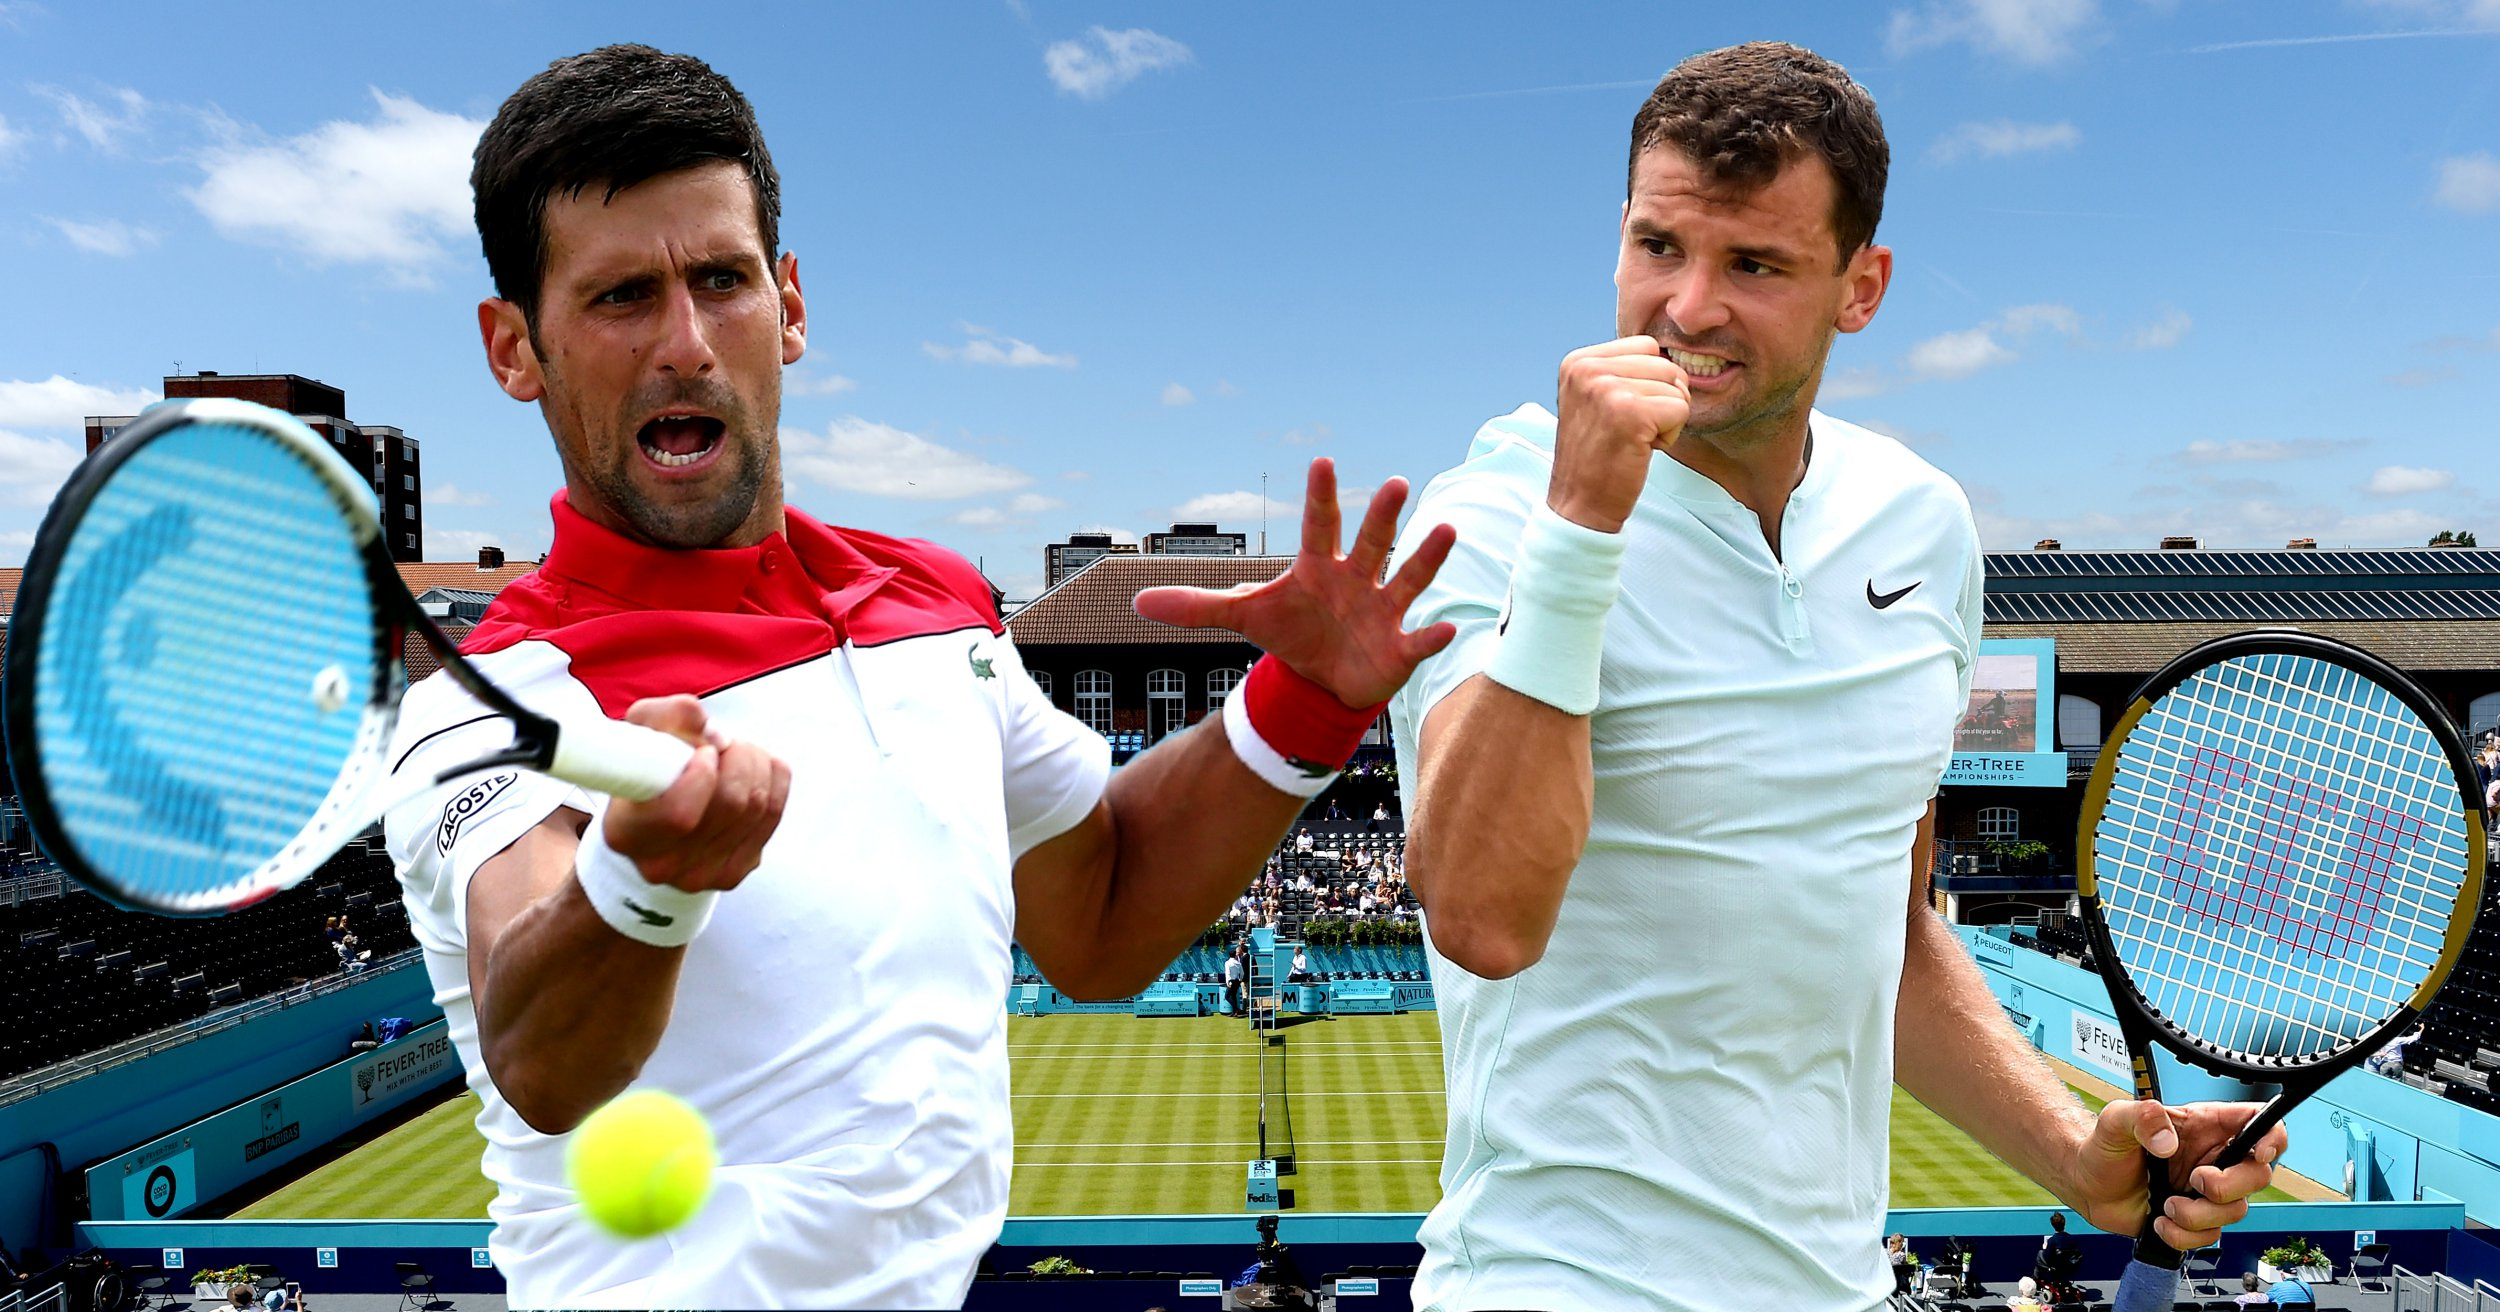 Queen's preview: Novak Djokovic can send out statement of intent with Grigor Dimitrov win